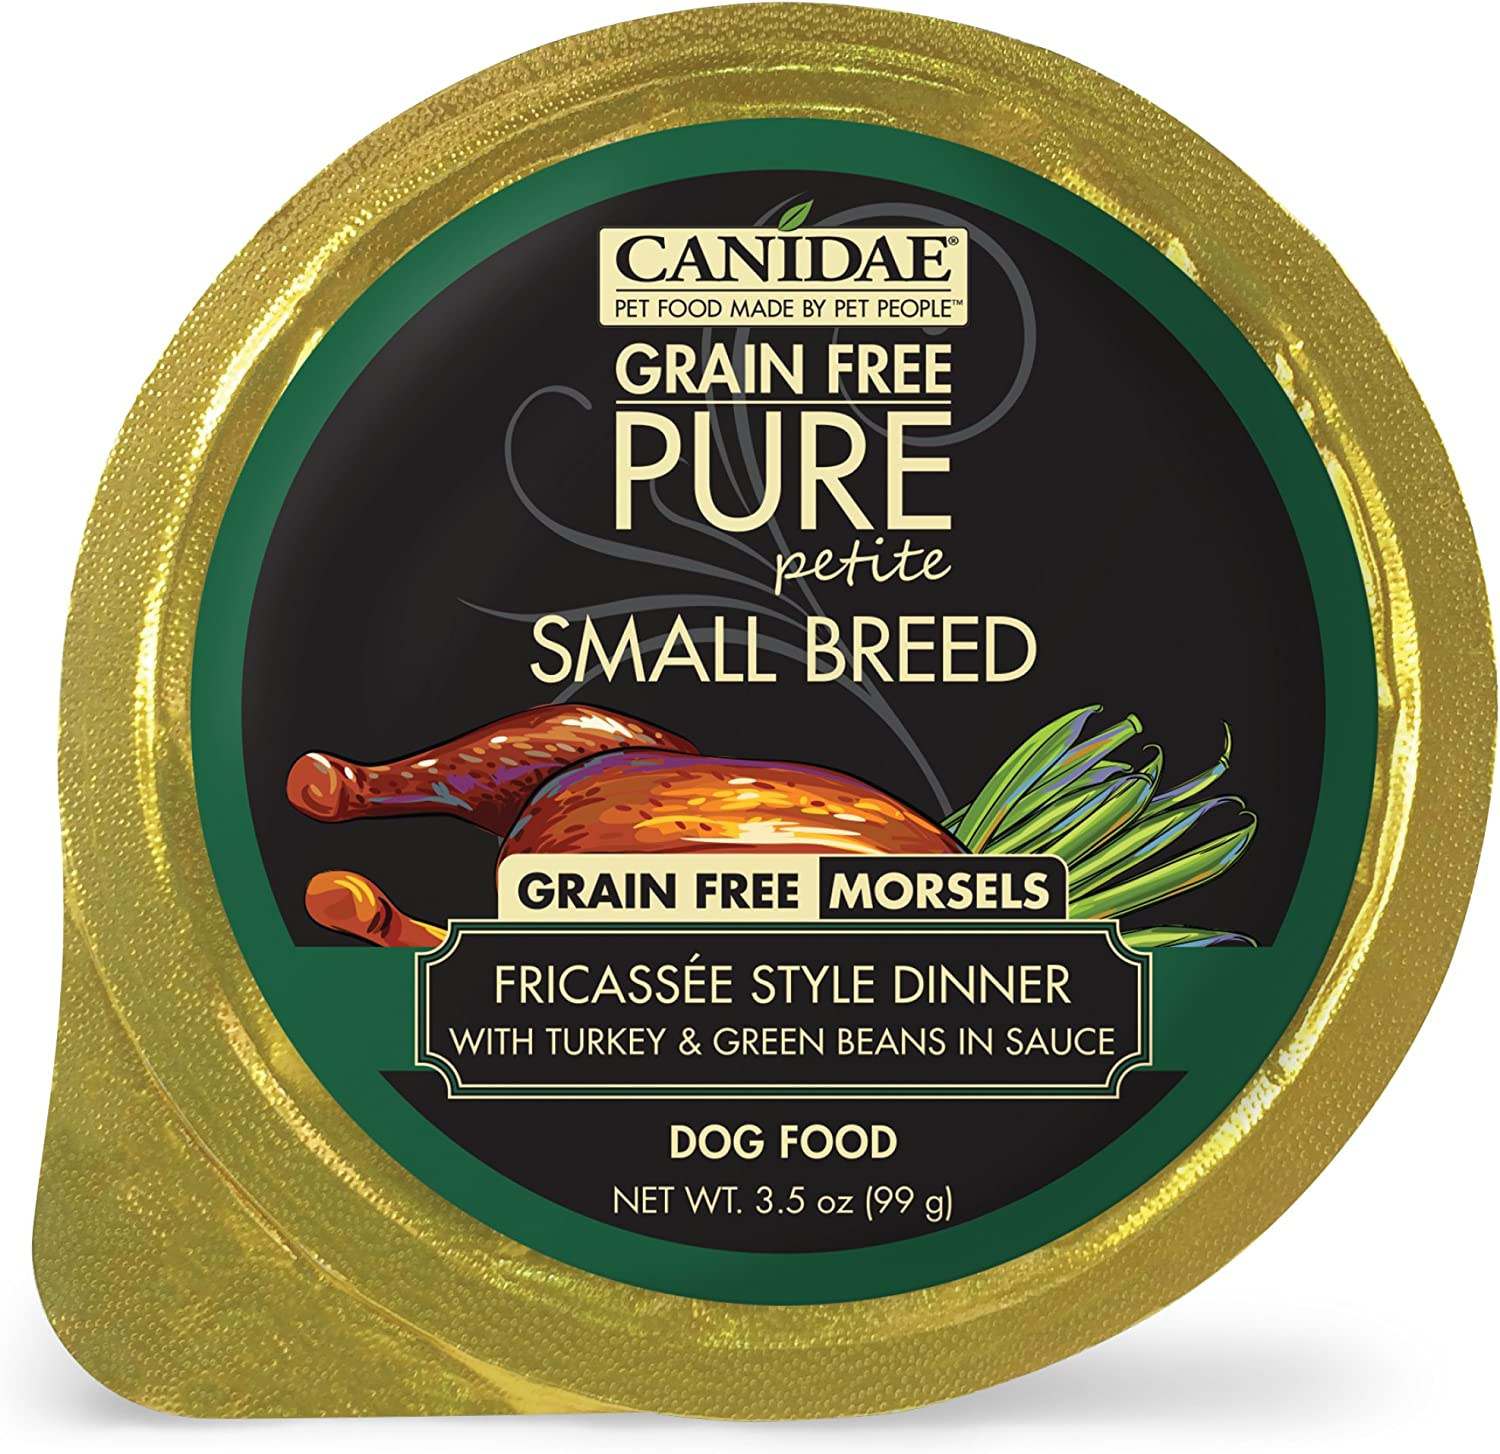 CANIDAE Petite Small Breed, Limited Ingredient Grain Free Wet Dog Food, Turkey & Green Bean Morsels, 3.5oz (12Pk)